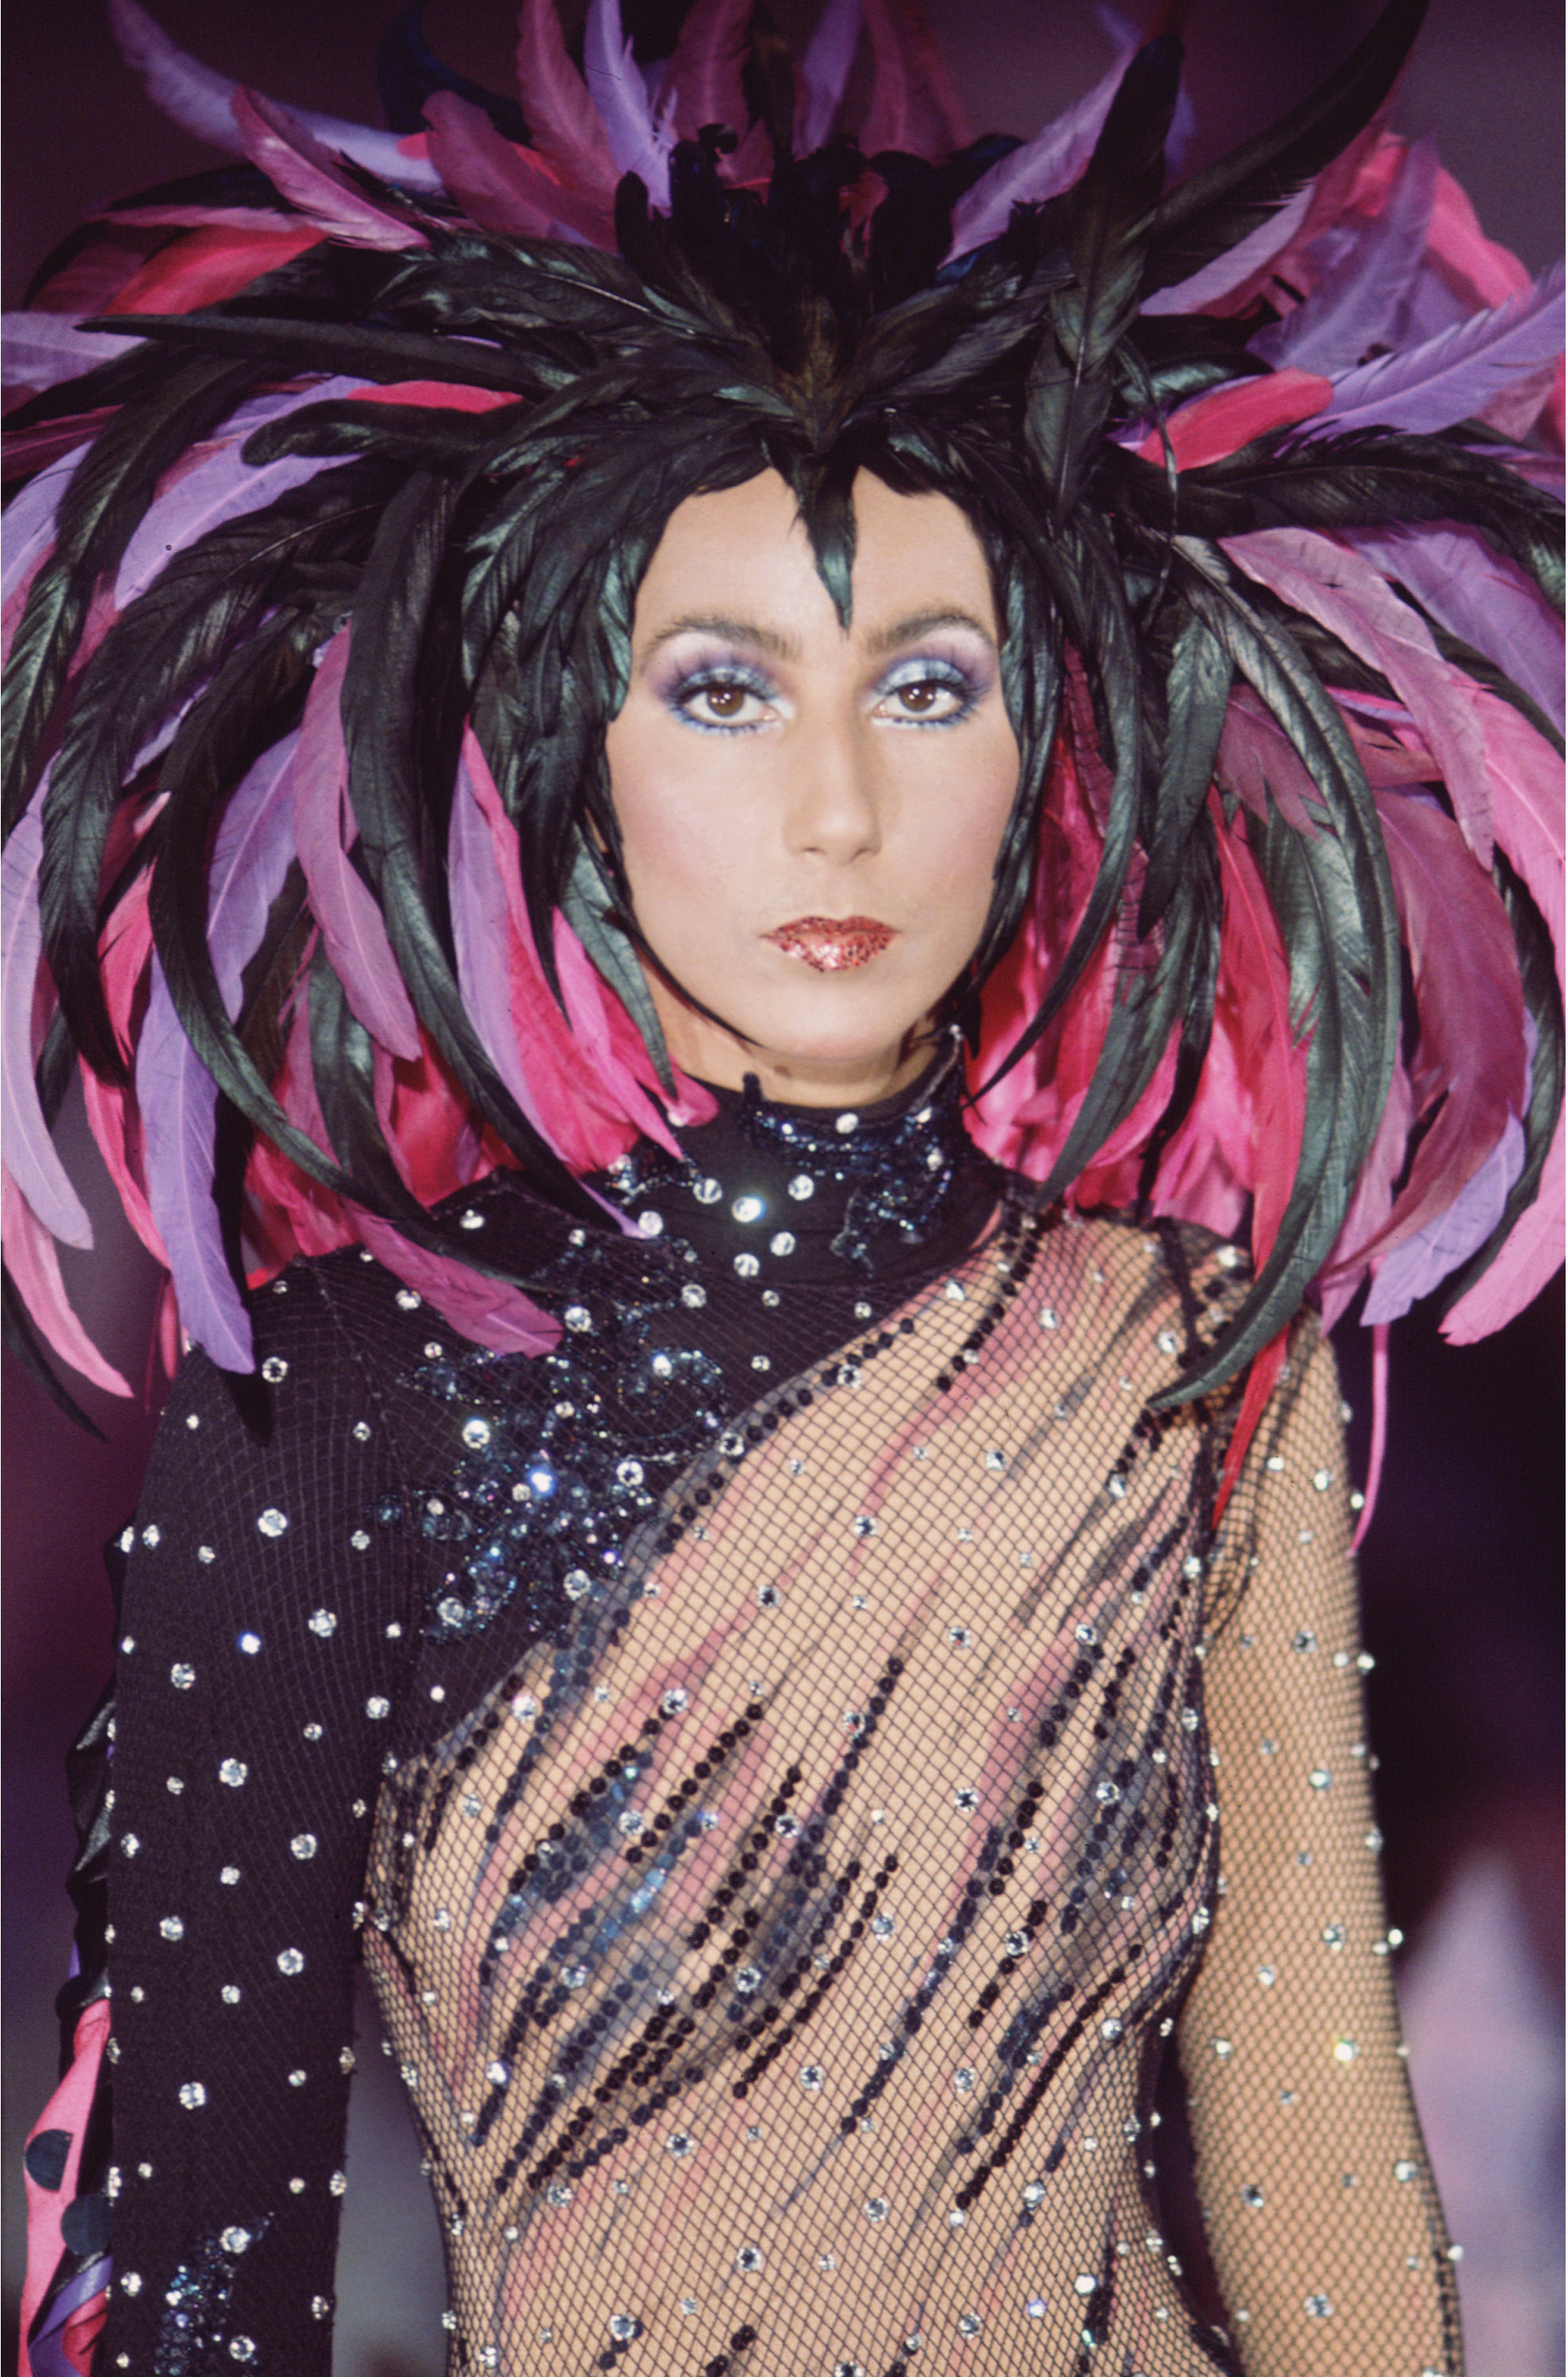 Promotional portrait of American singer and actress Cher (born Cherilyn Sarkisian LaPiere) in a semi-transparent outfit with a feathered headdress for the television variety show 'The Sonny and Cher Comedy Hour,' 1972. (Photo by CBS Photo Archive/Getty Images)